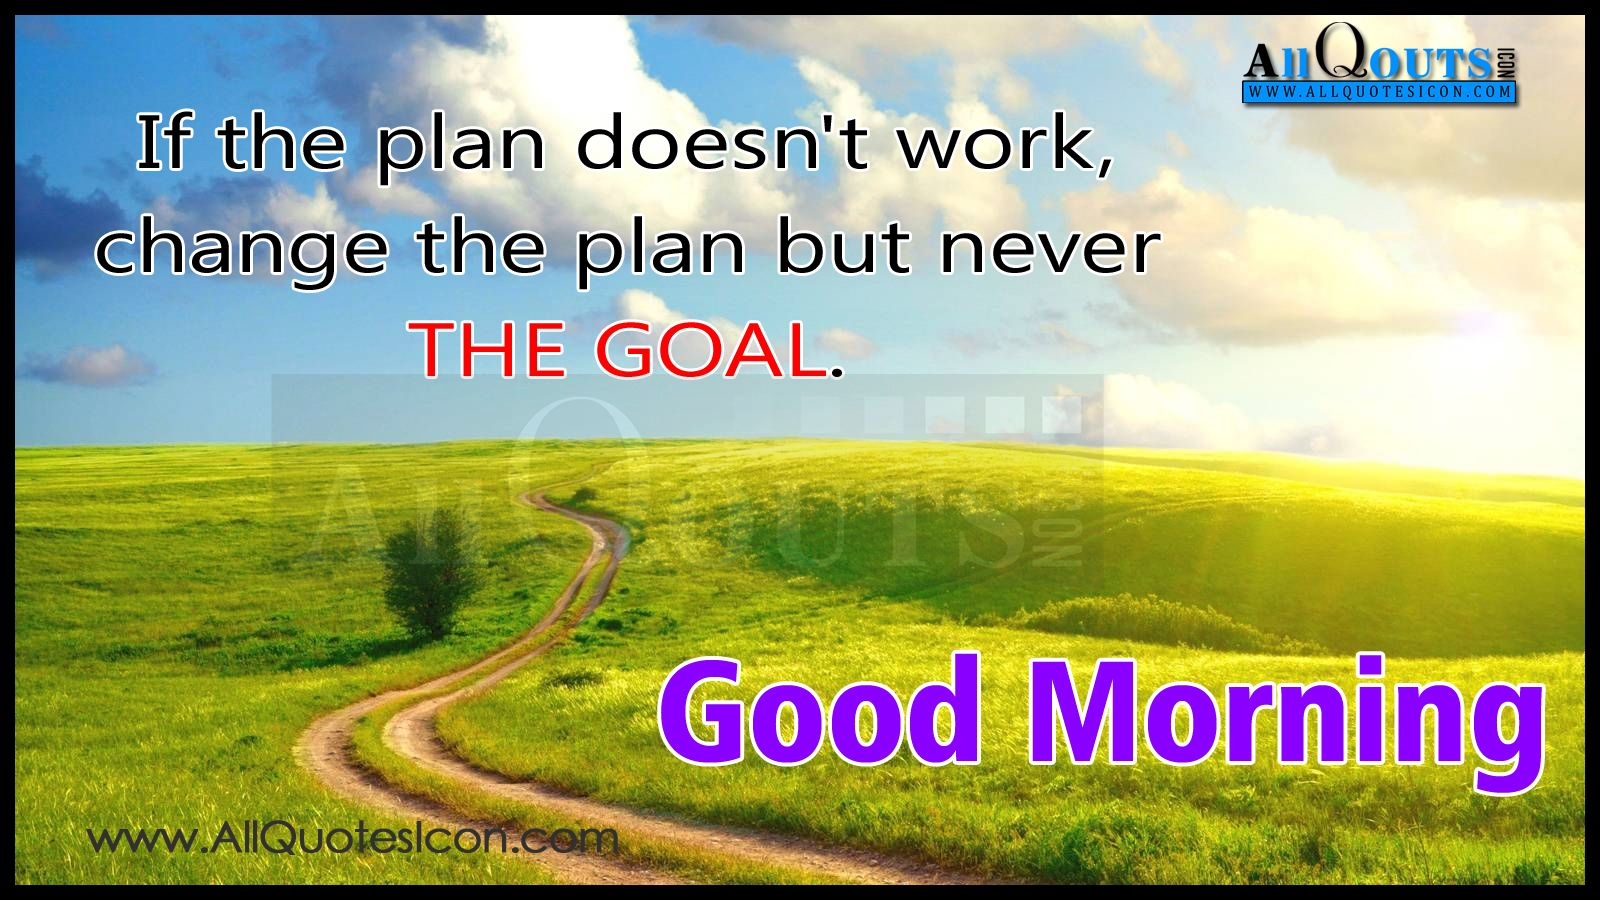 English Good Morning Quotations And Wallpapers Life Good Morning Motivation Thoughts In English 1600x900 Download Hd Wallpaper Wallpapertip